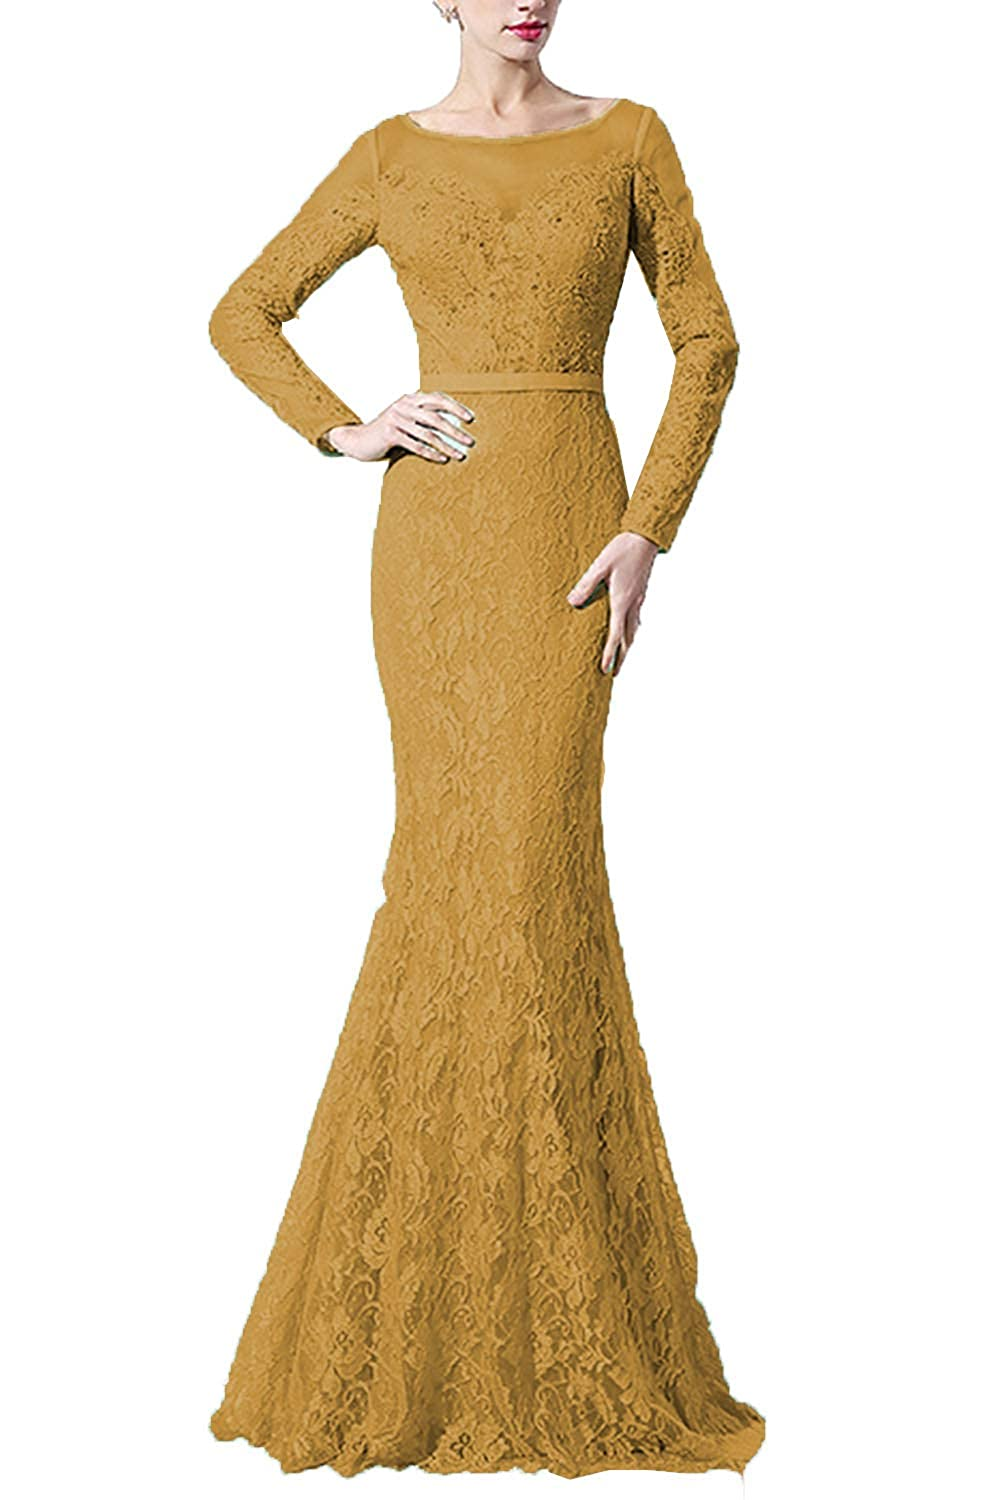 gold SDRESS Women's Lace Mermaid Evening Dress with Sleeves Crystal Beaded Formal Dress Long